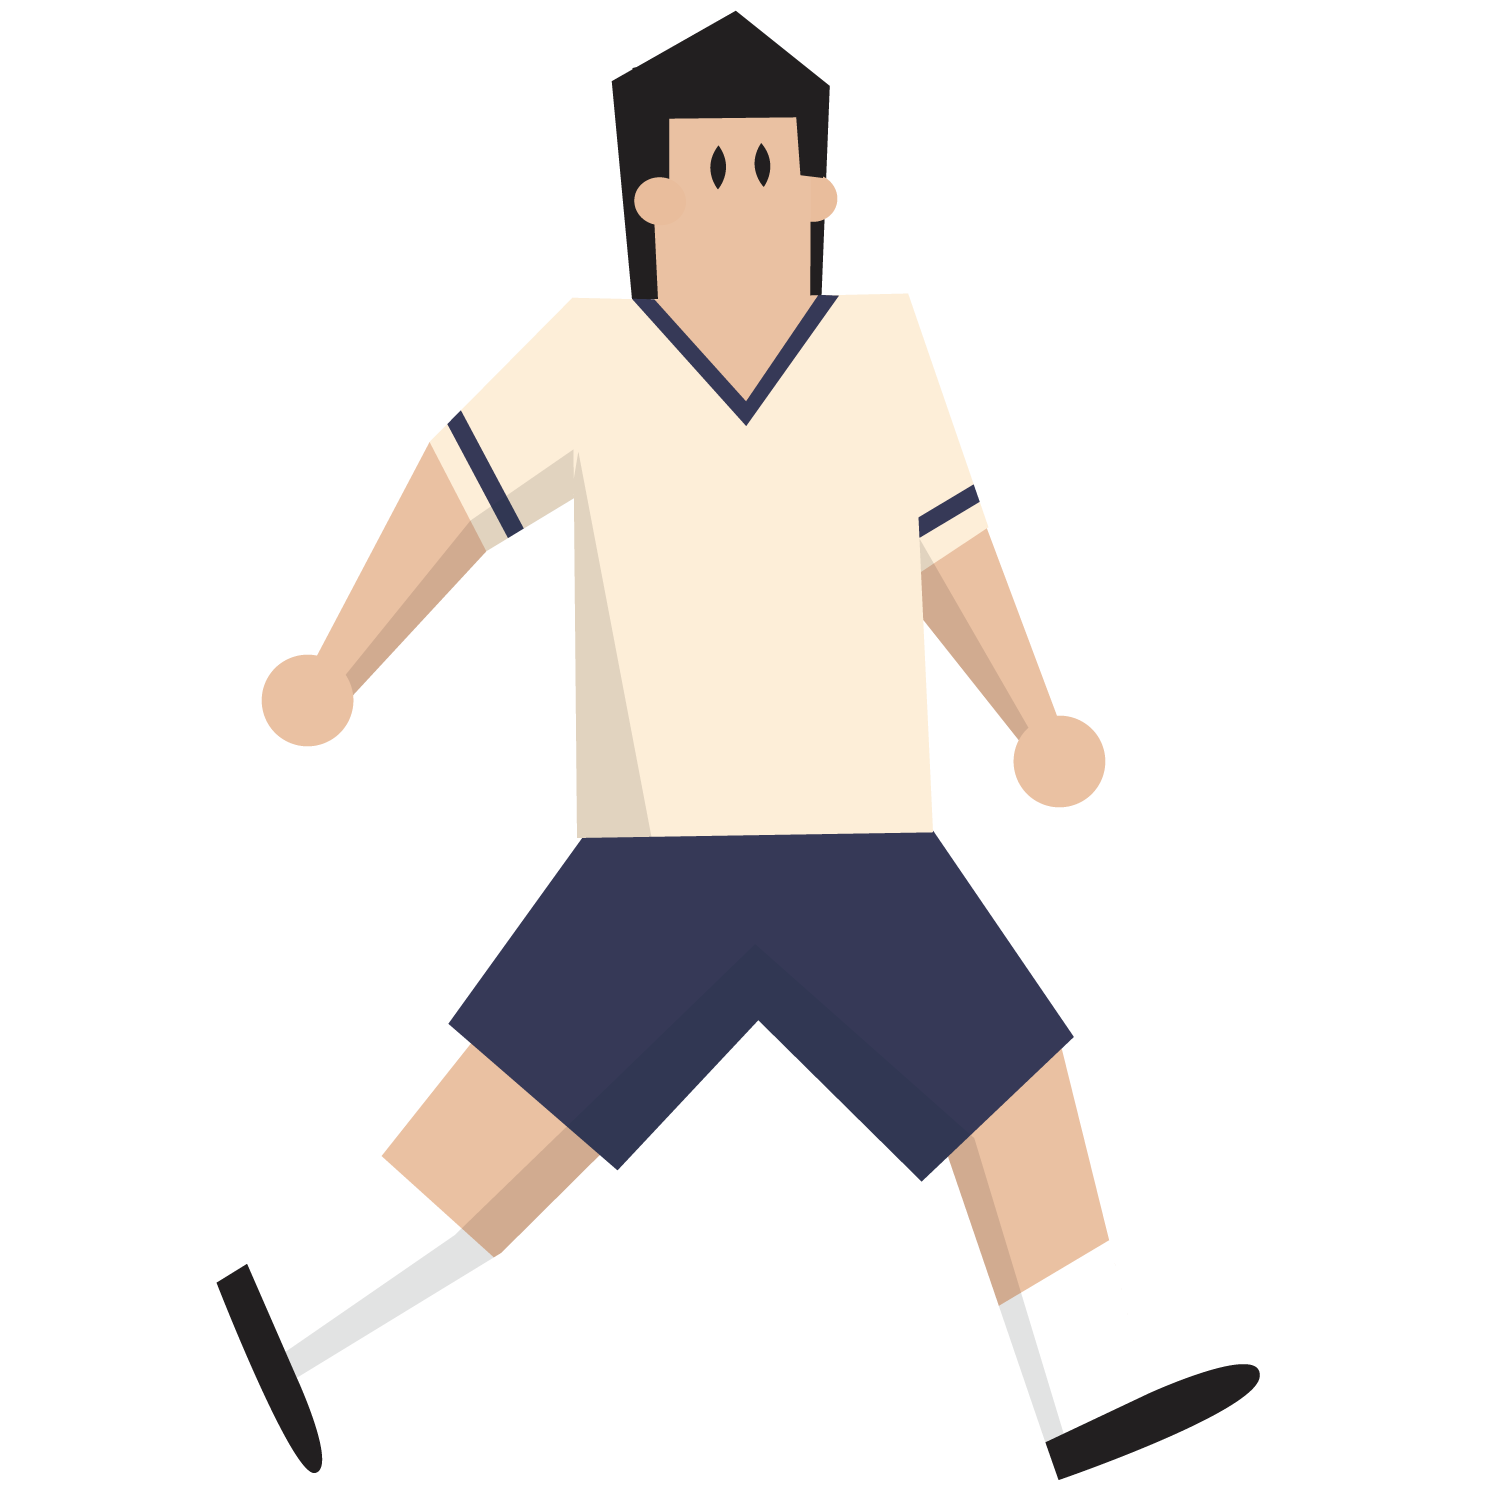 American football referee clipart banner free Football Referee Captain Tsubasa - Football teenager 1500*1500 ... banner free